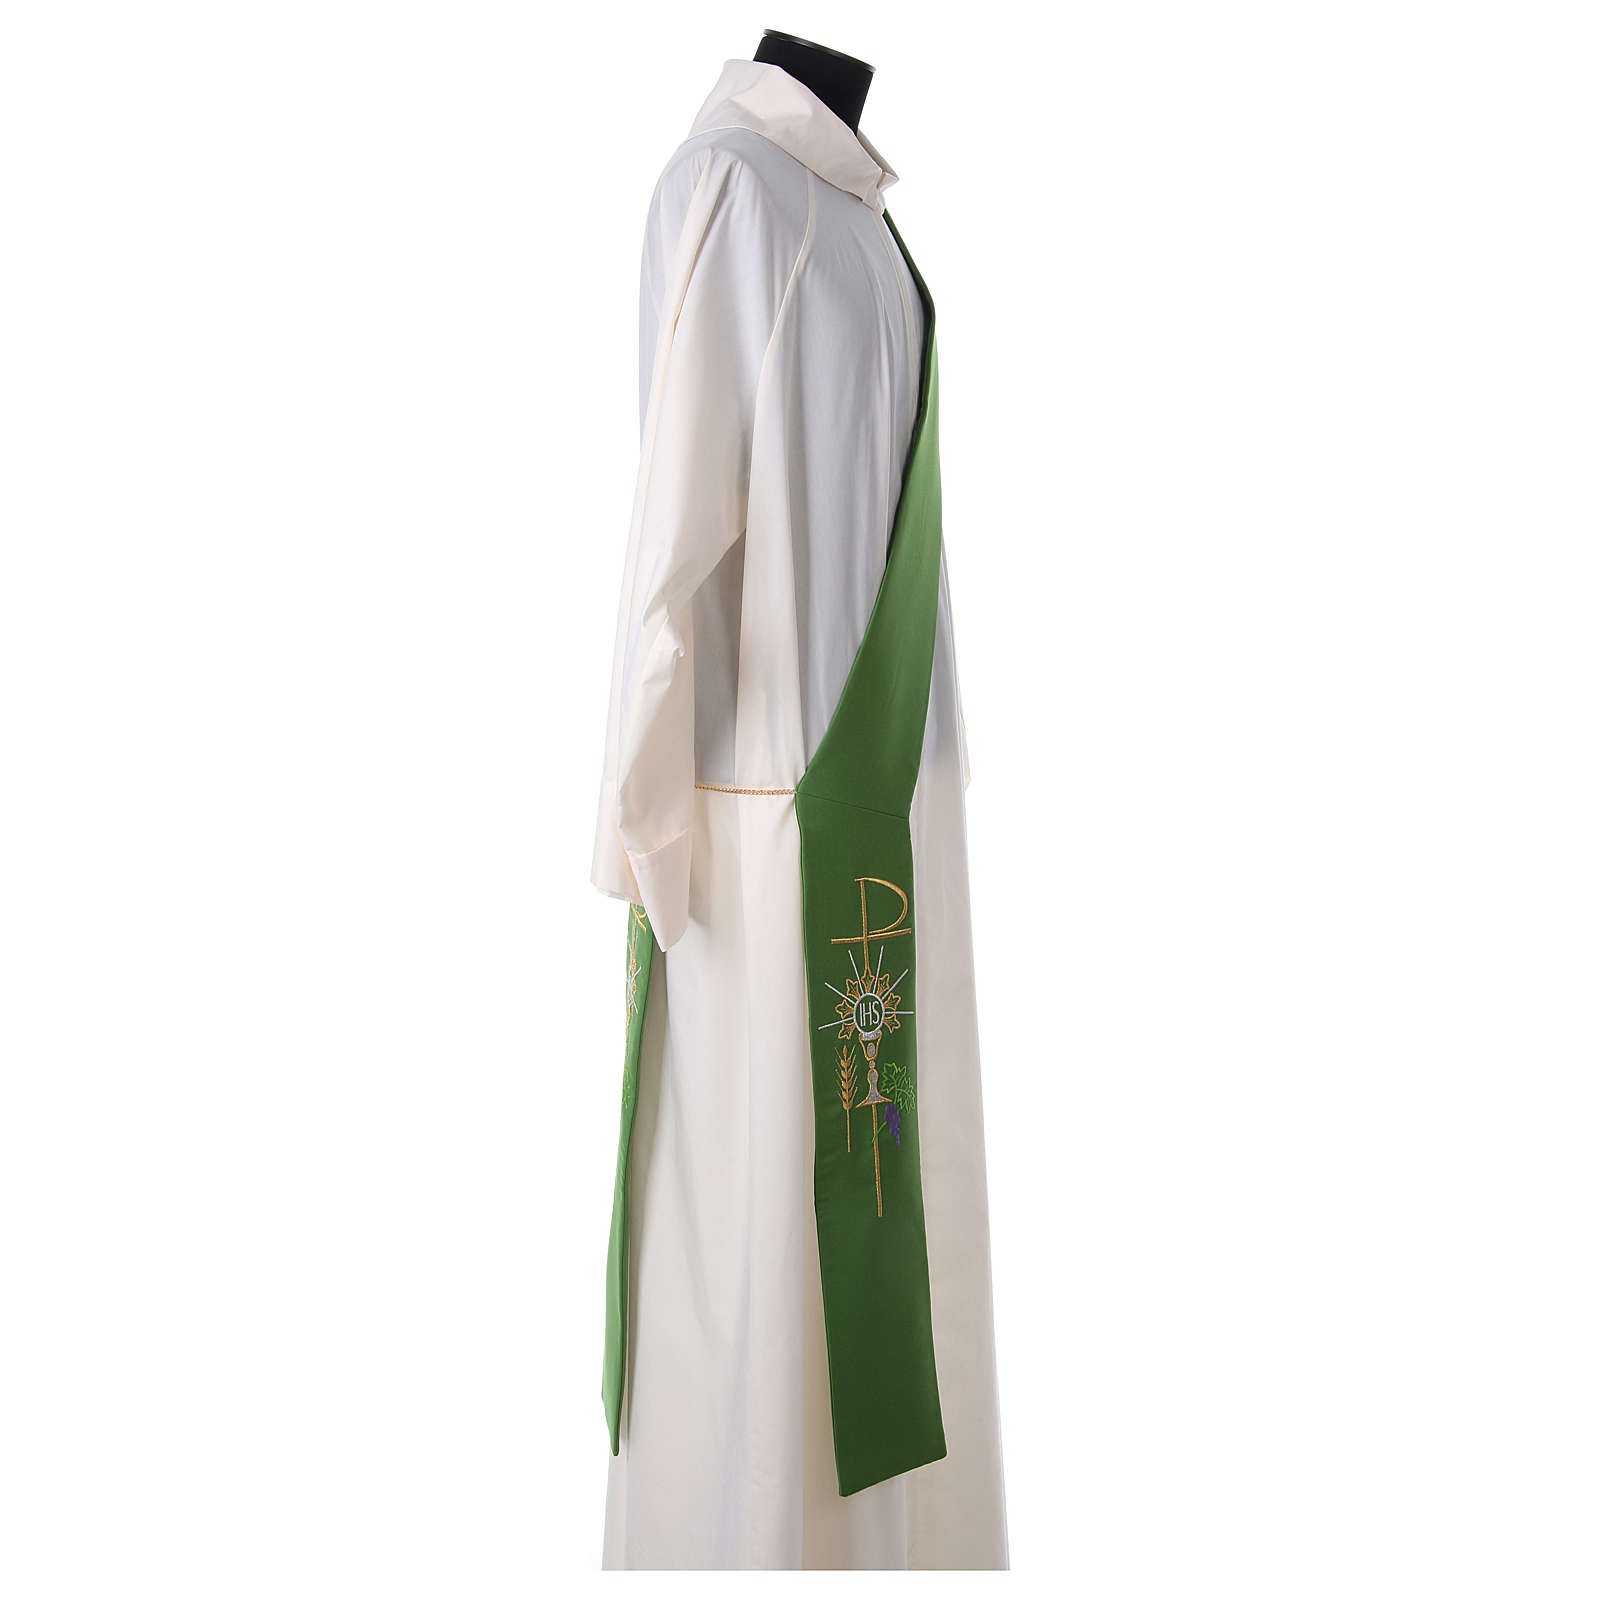 Diaconal stole in polyester with chalice, host and grapes 4